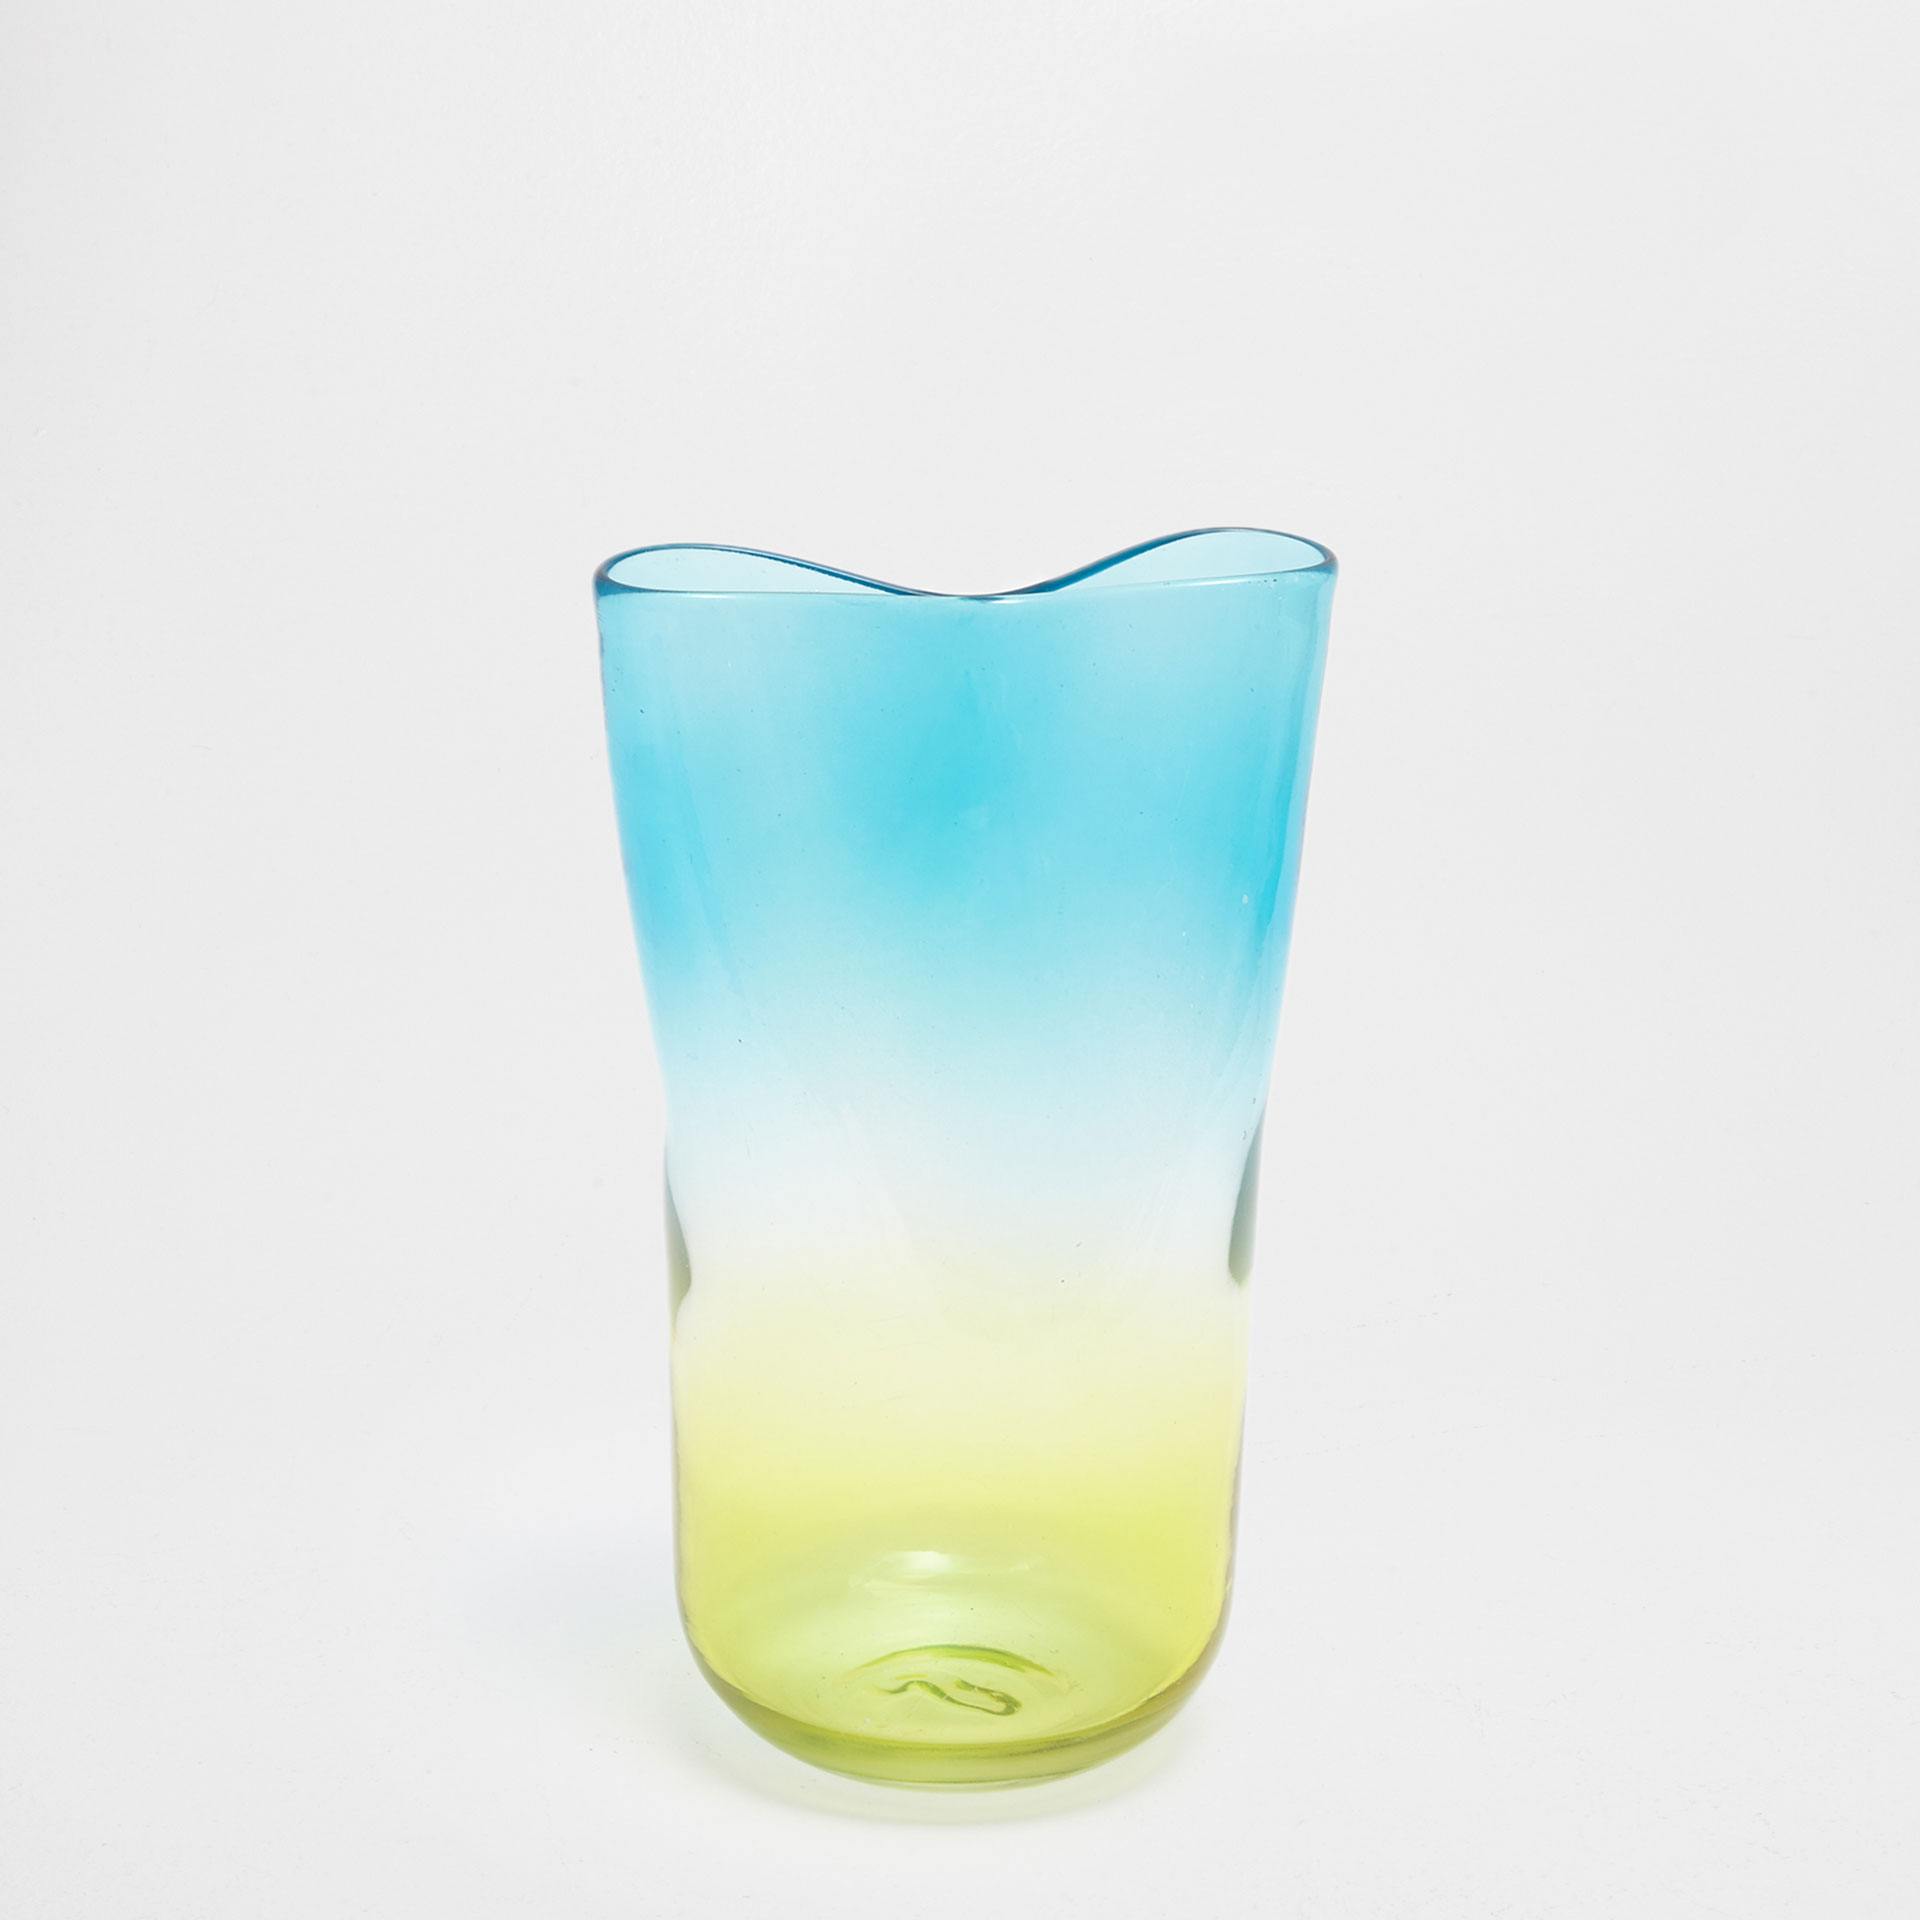 BLUE AND YELLOW OMBRÉ GLASS VASE